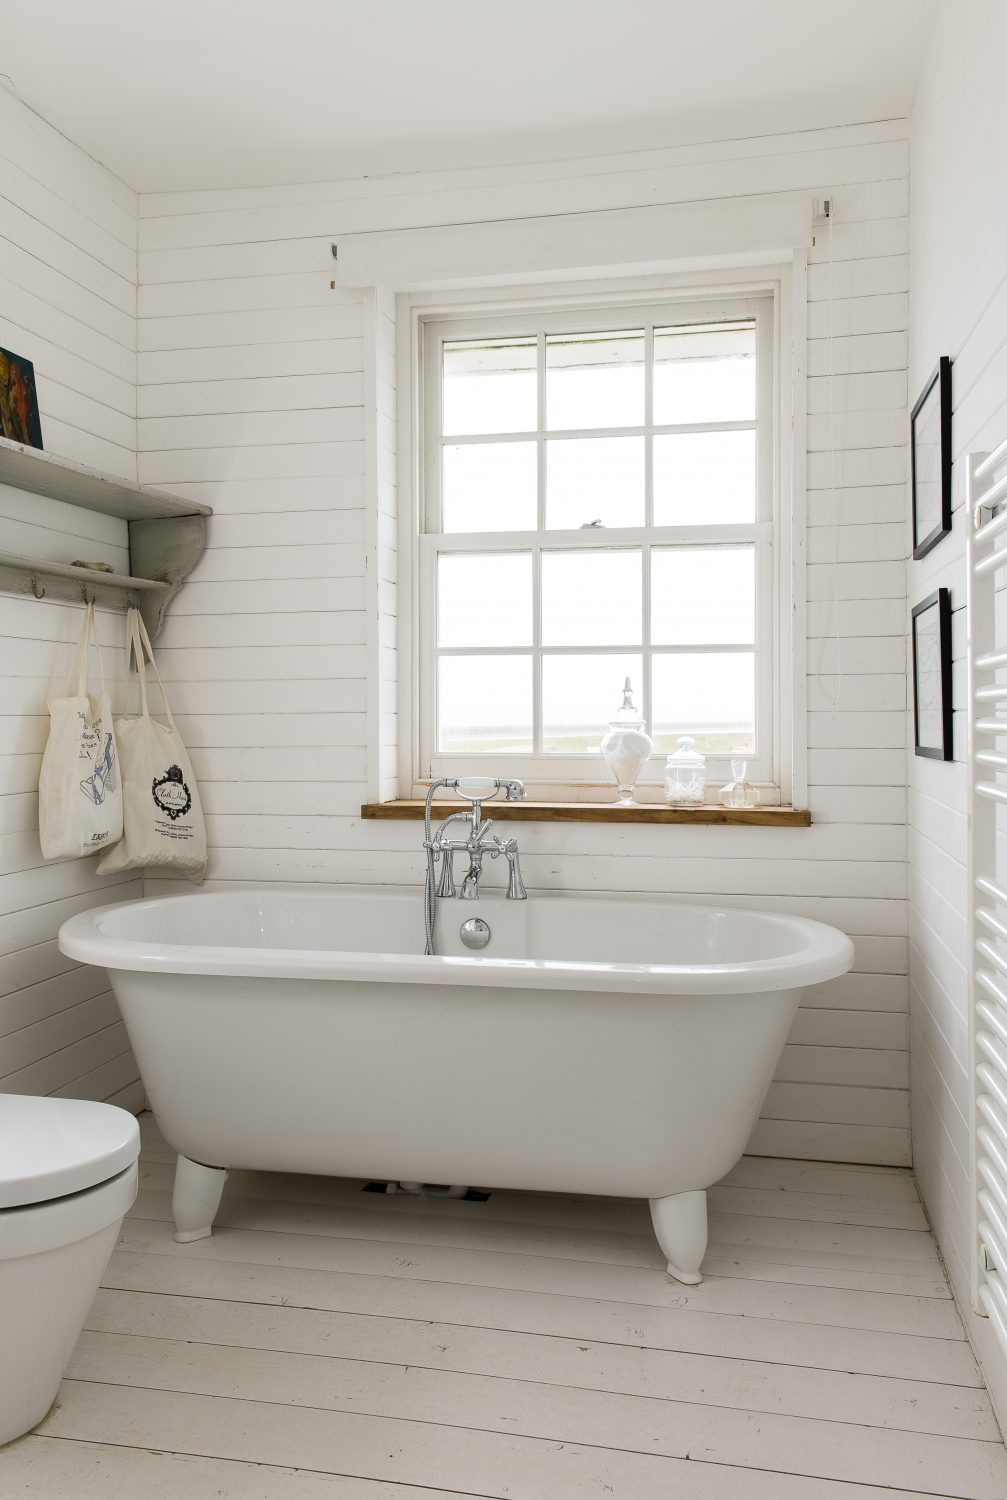 The house had been vandalised before Marta bought it, the bathroom smashed to pieces, so she had to put an entirely new one in. She panelled it with horizontal tongue and groove to make it feel warmer and put in a freestanding bath as that is what would have been there before